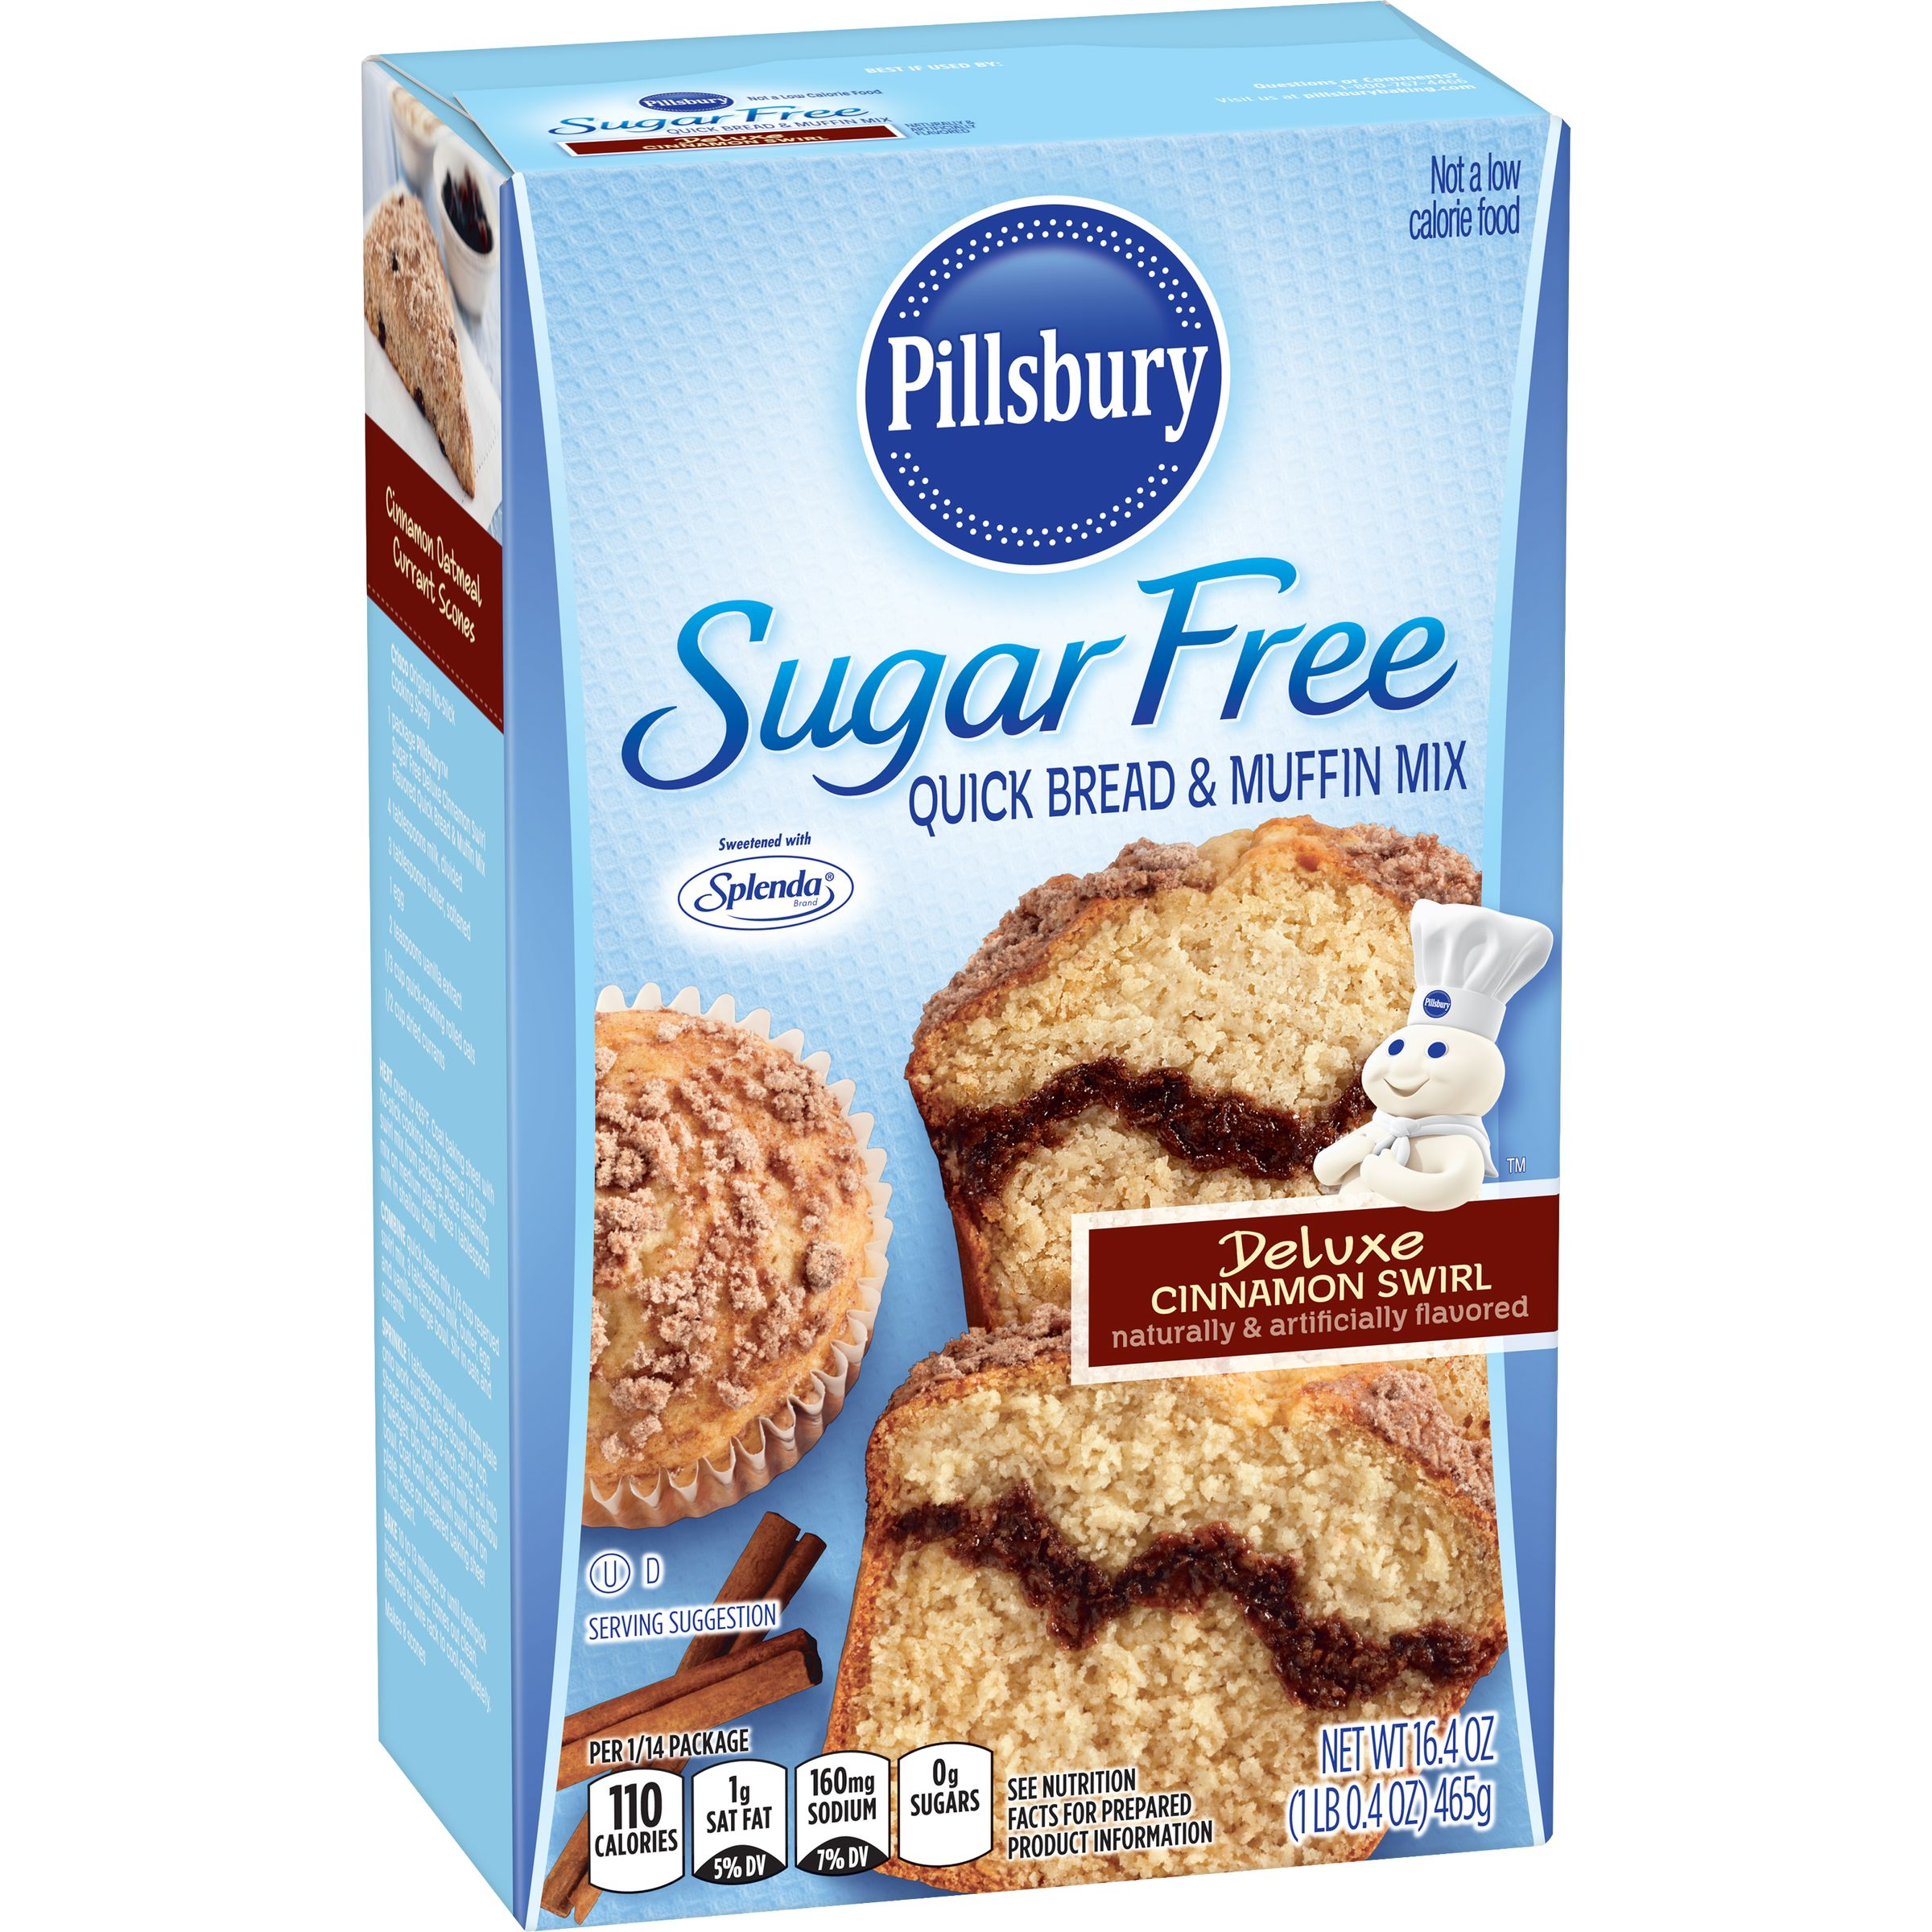 (5 Pack) Pillsbury Sugar Free Cinnamon Swirl Quick Bread & Muffin Mix, 16.4-Ounce